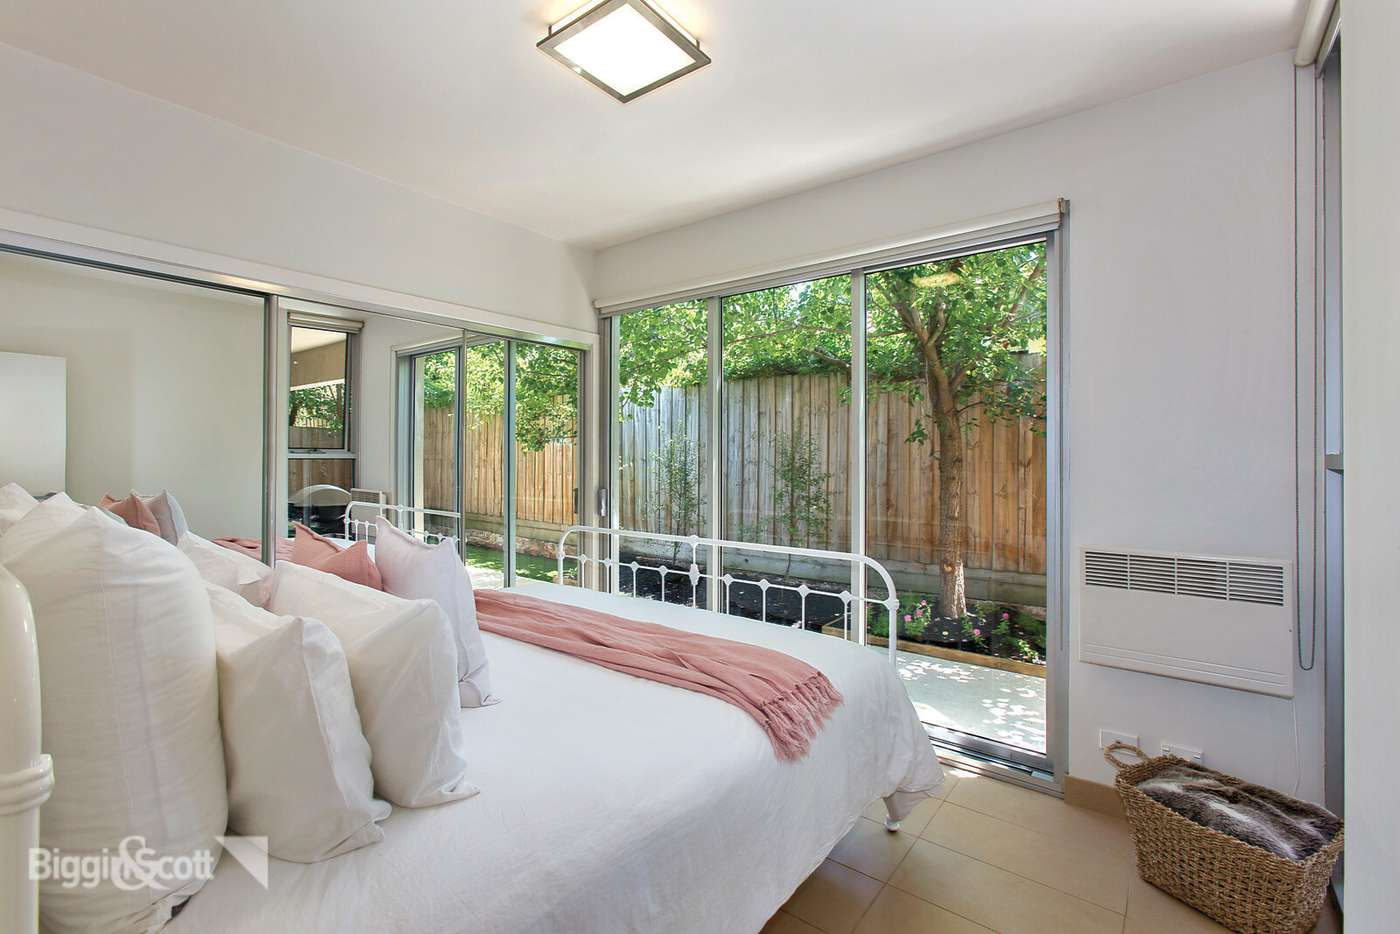 Sixth view of Homely apartment listing, 8/16-18 Dene Avenue, Malvern East VIC 3145